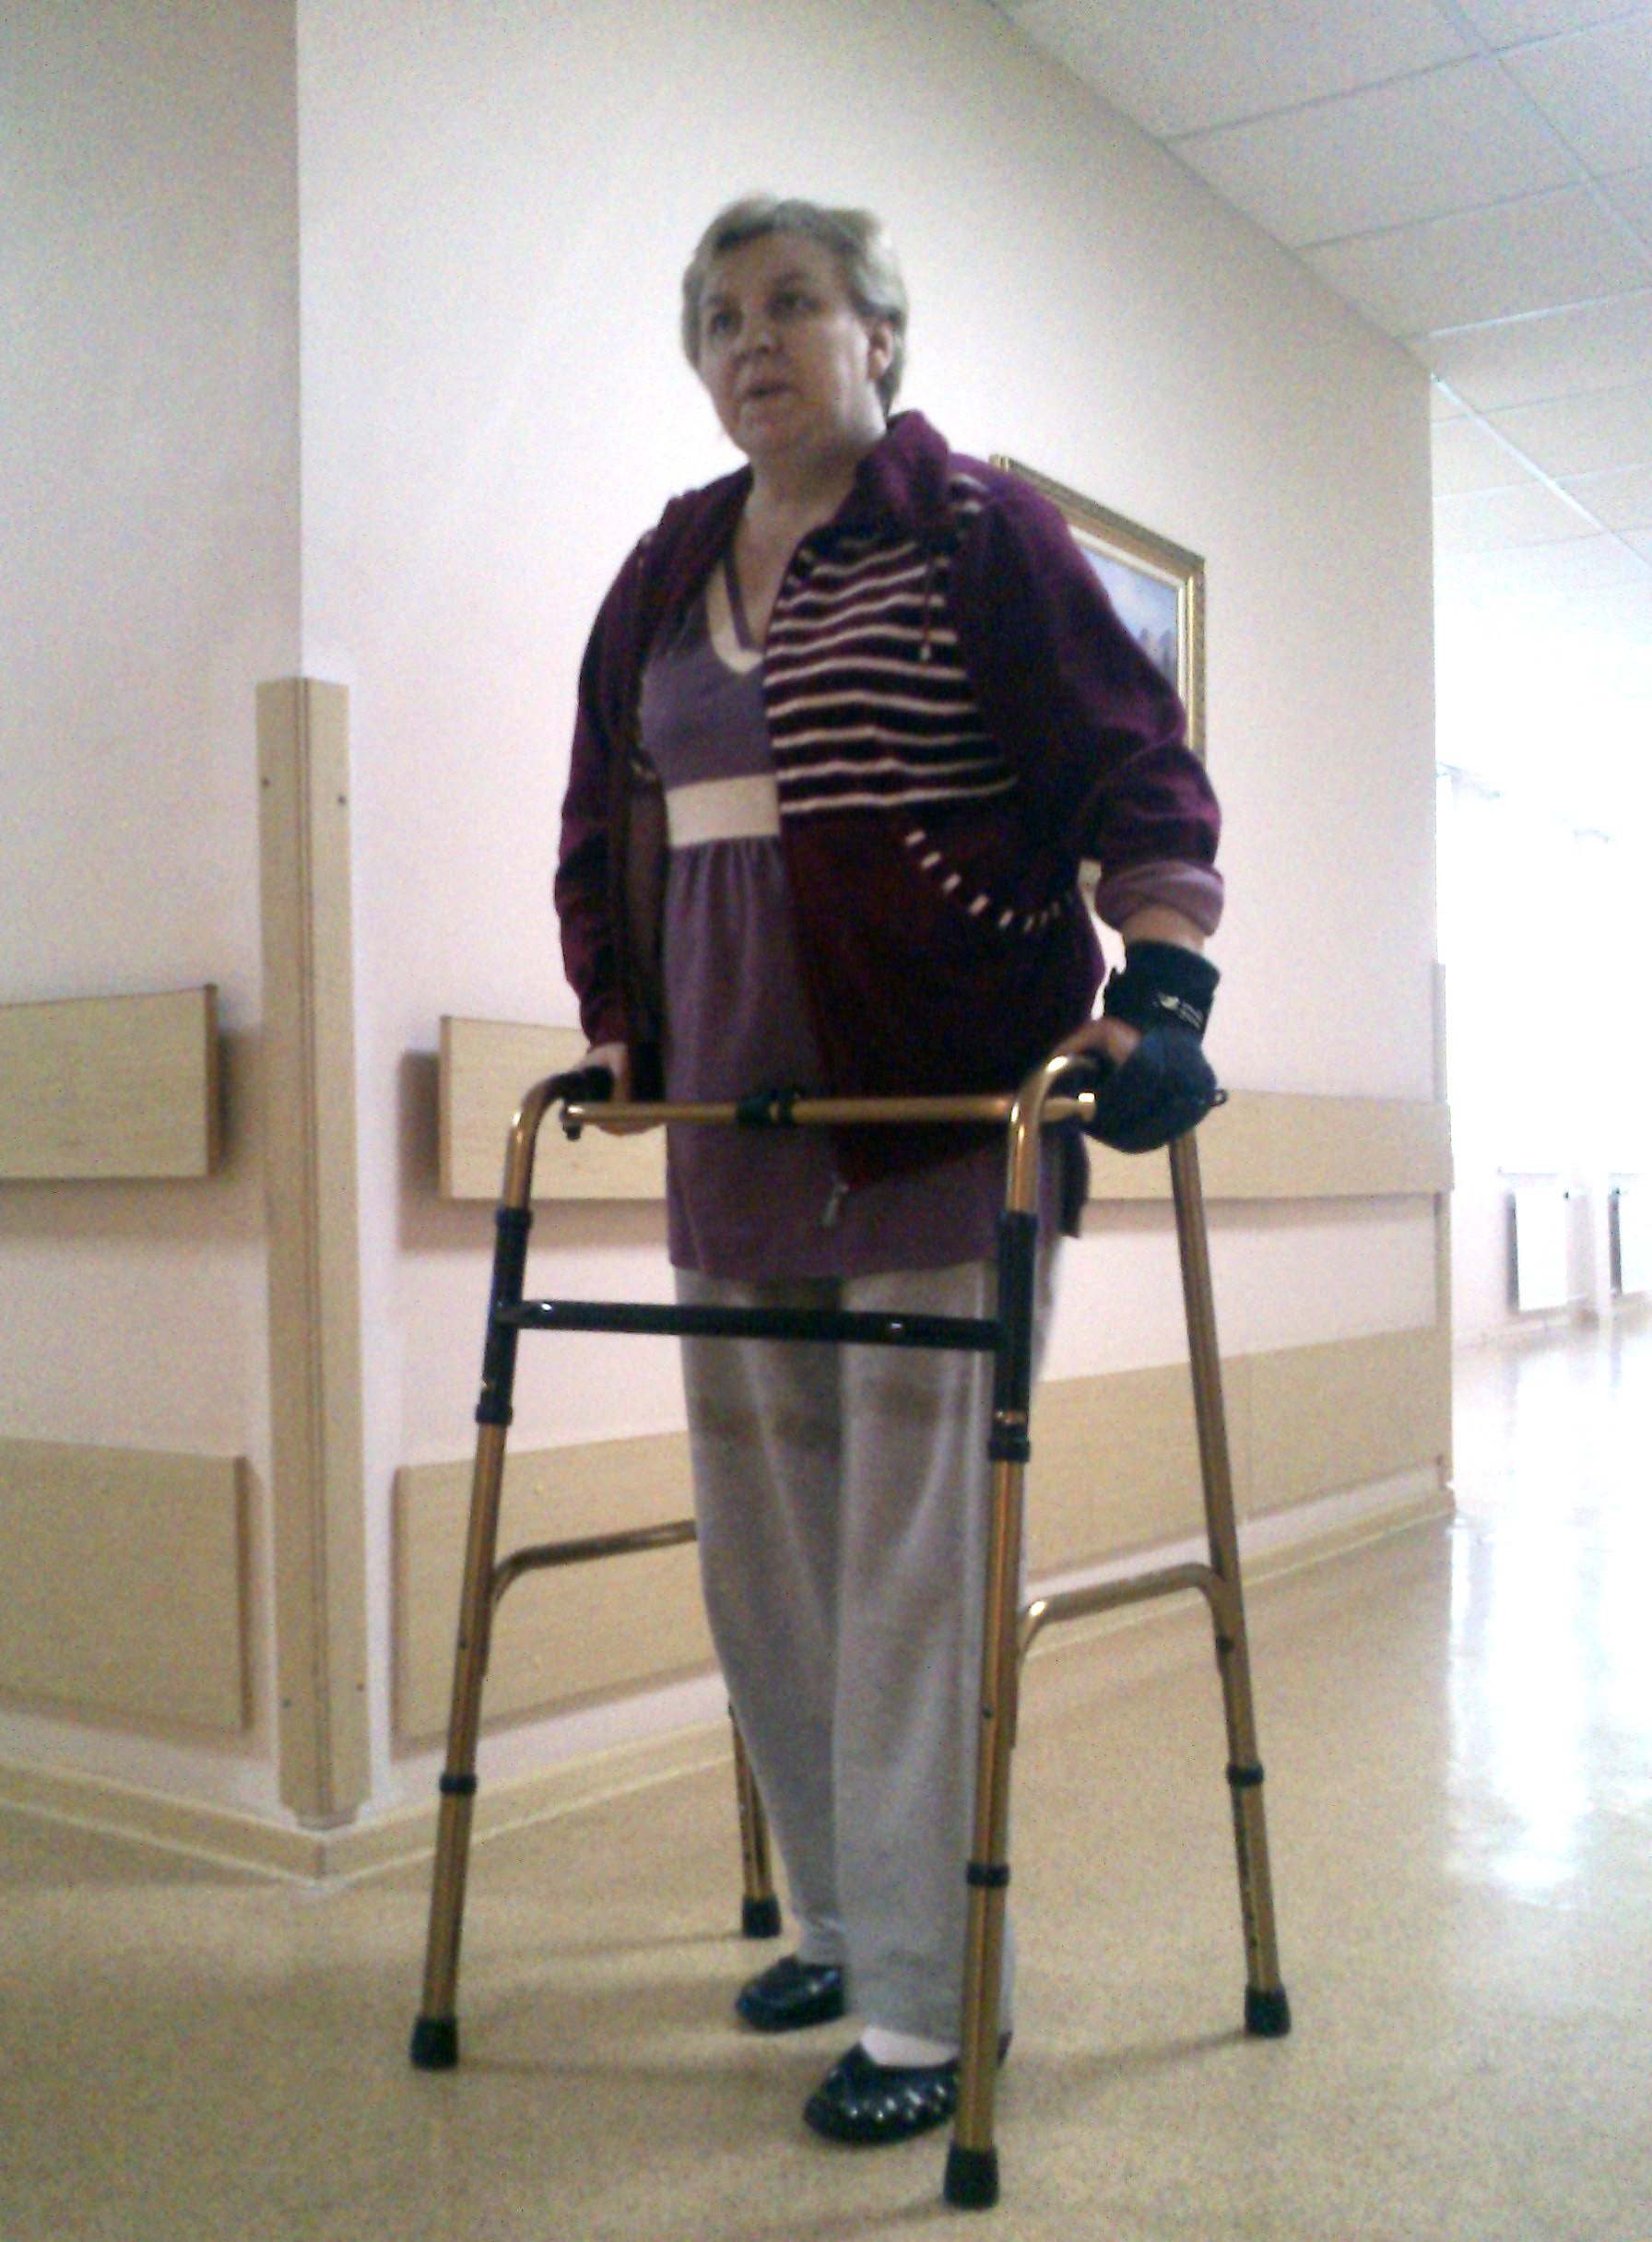 Grips being used on a walking frame